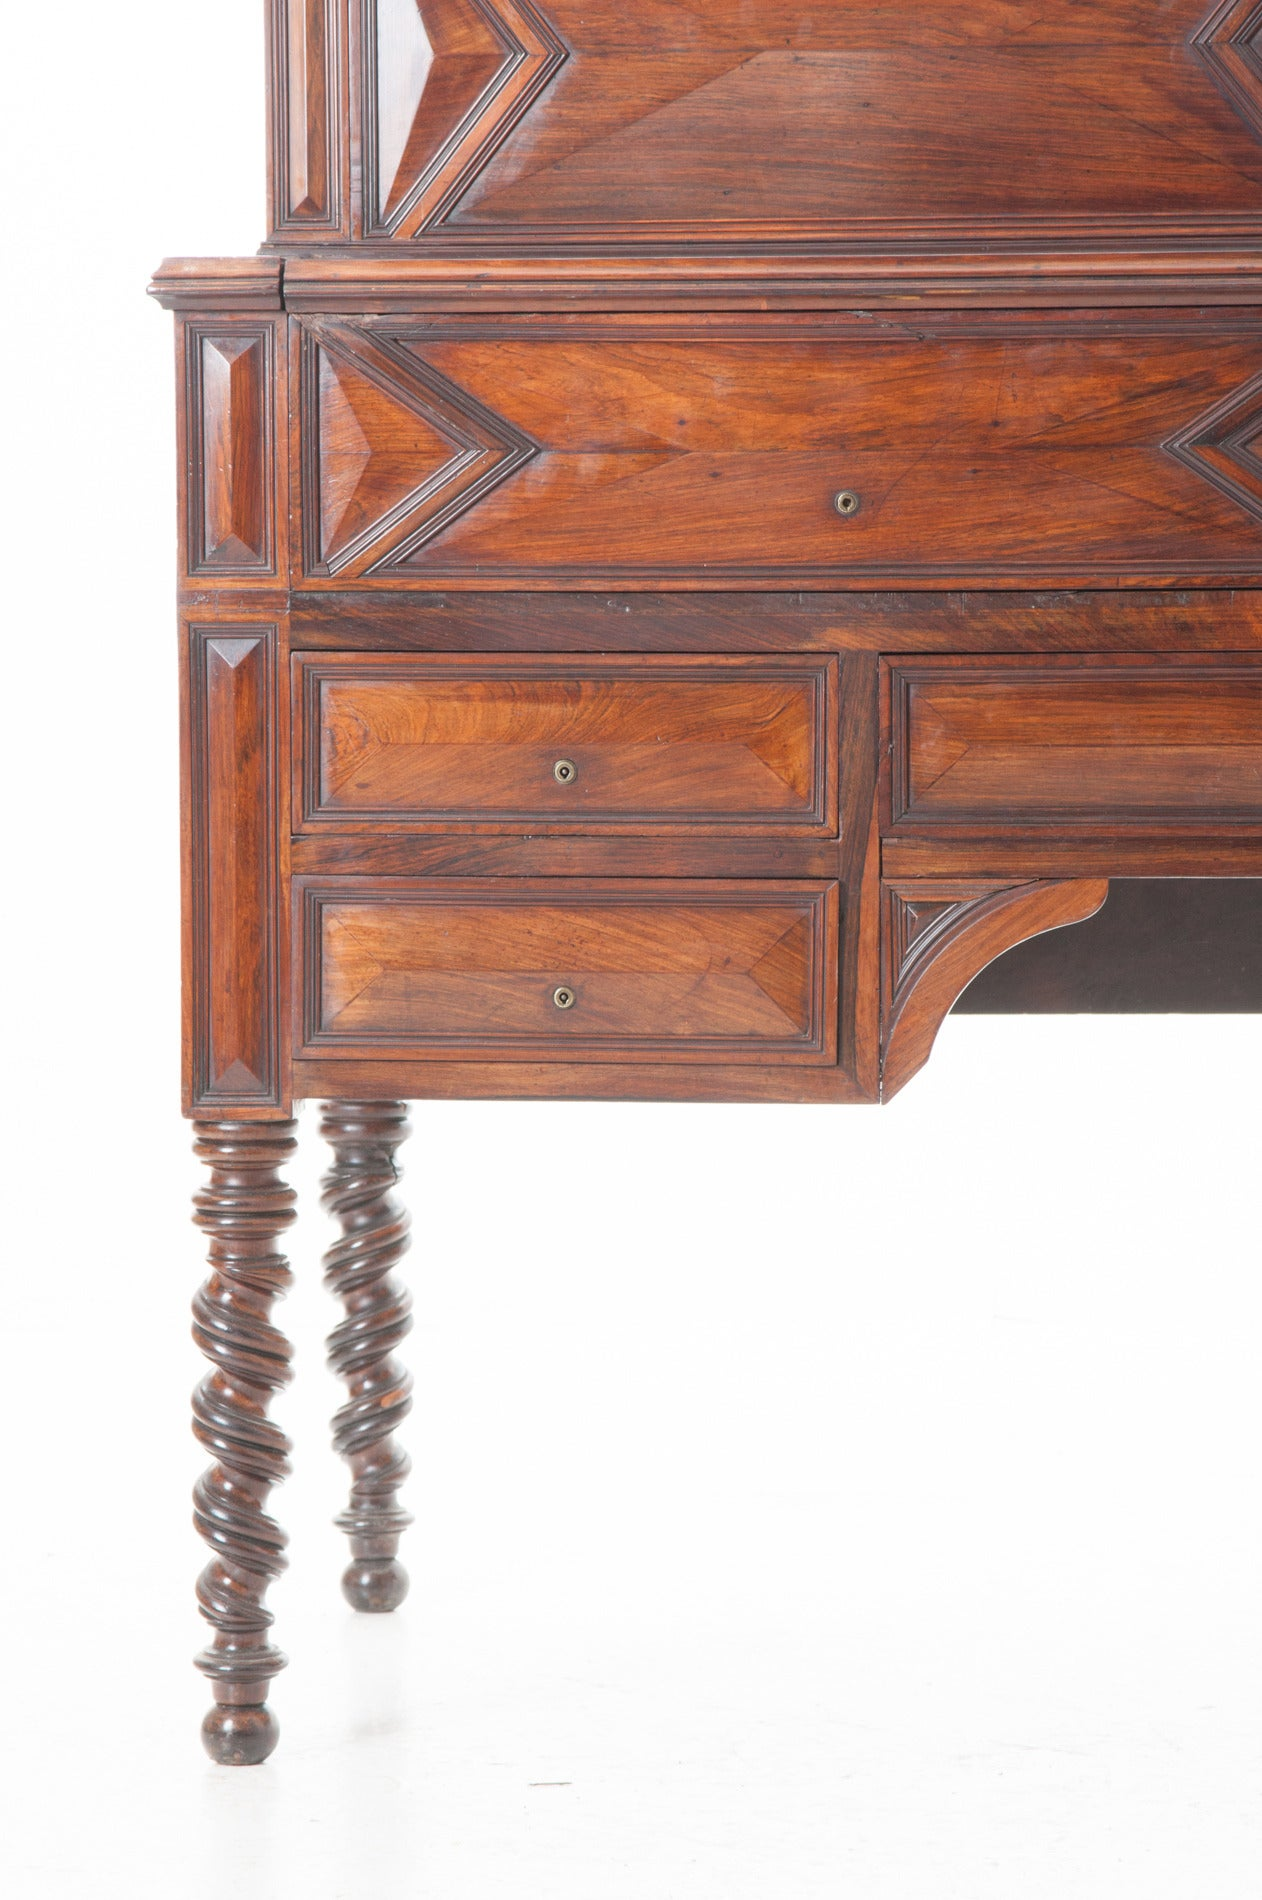 Neoclassical French 19th Century Barley Twist Fold Down Desk For Sale